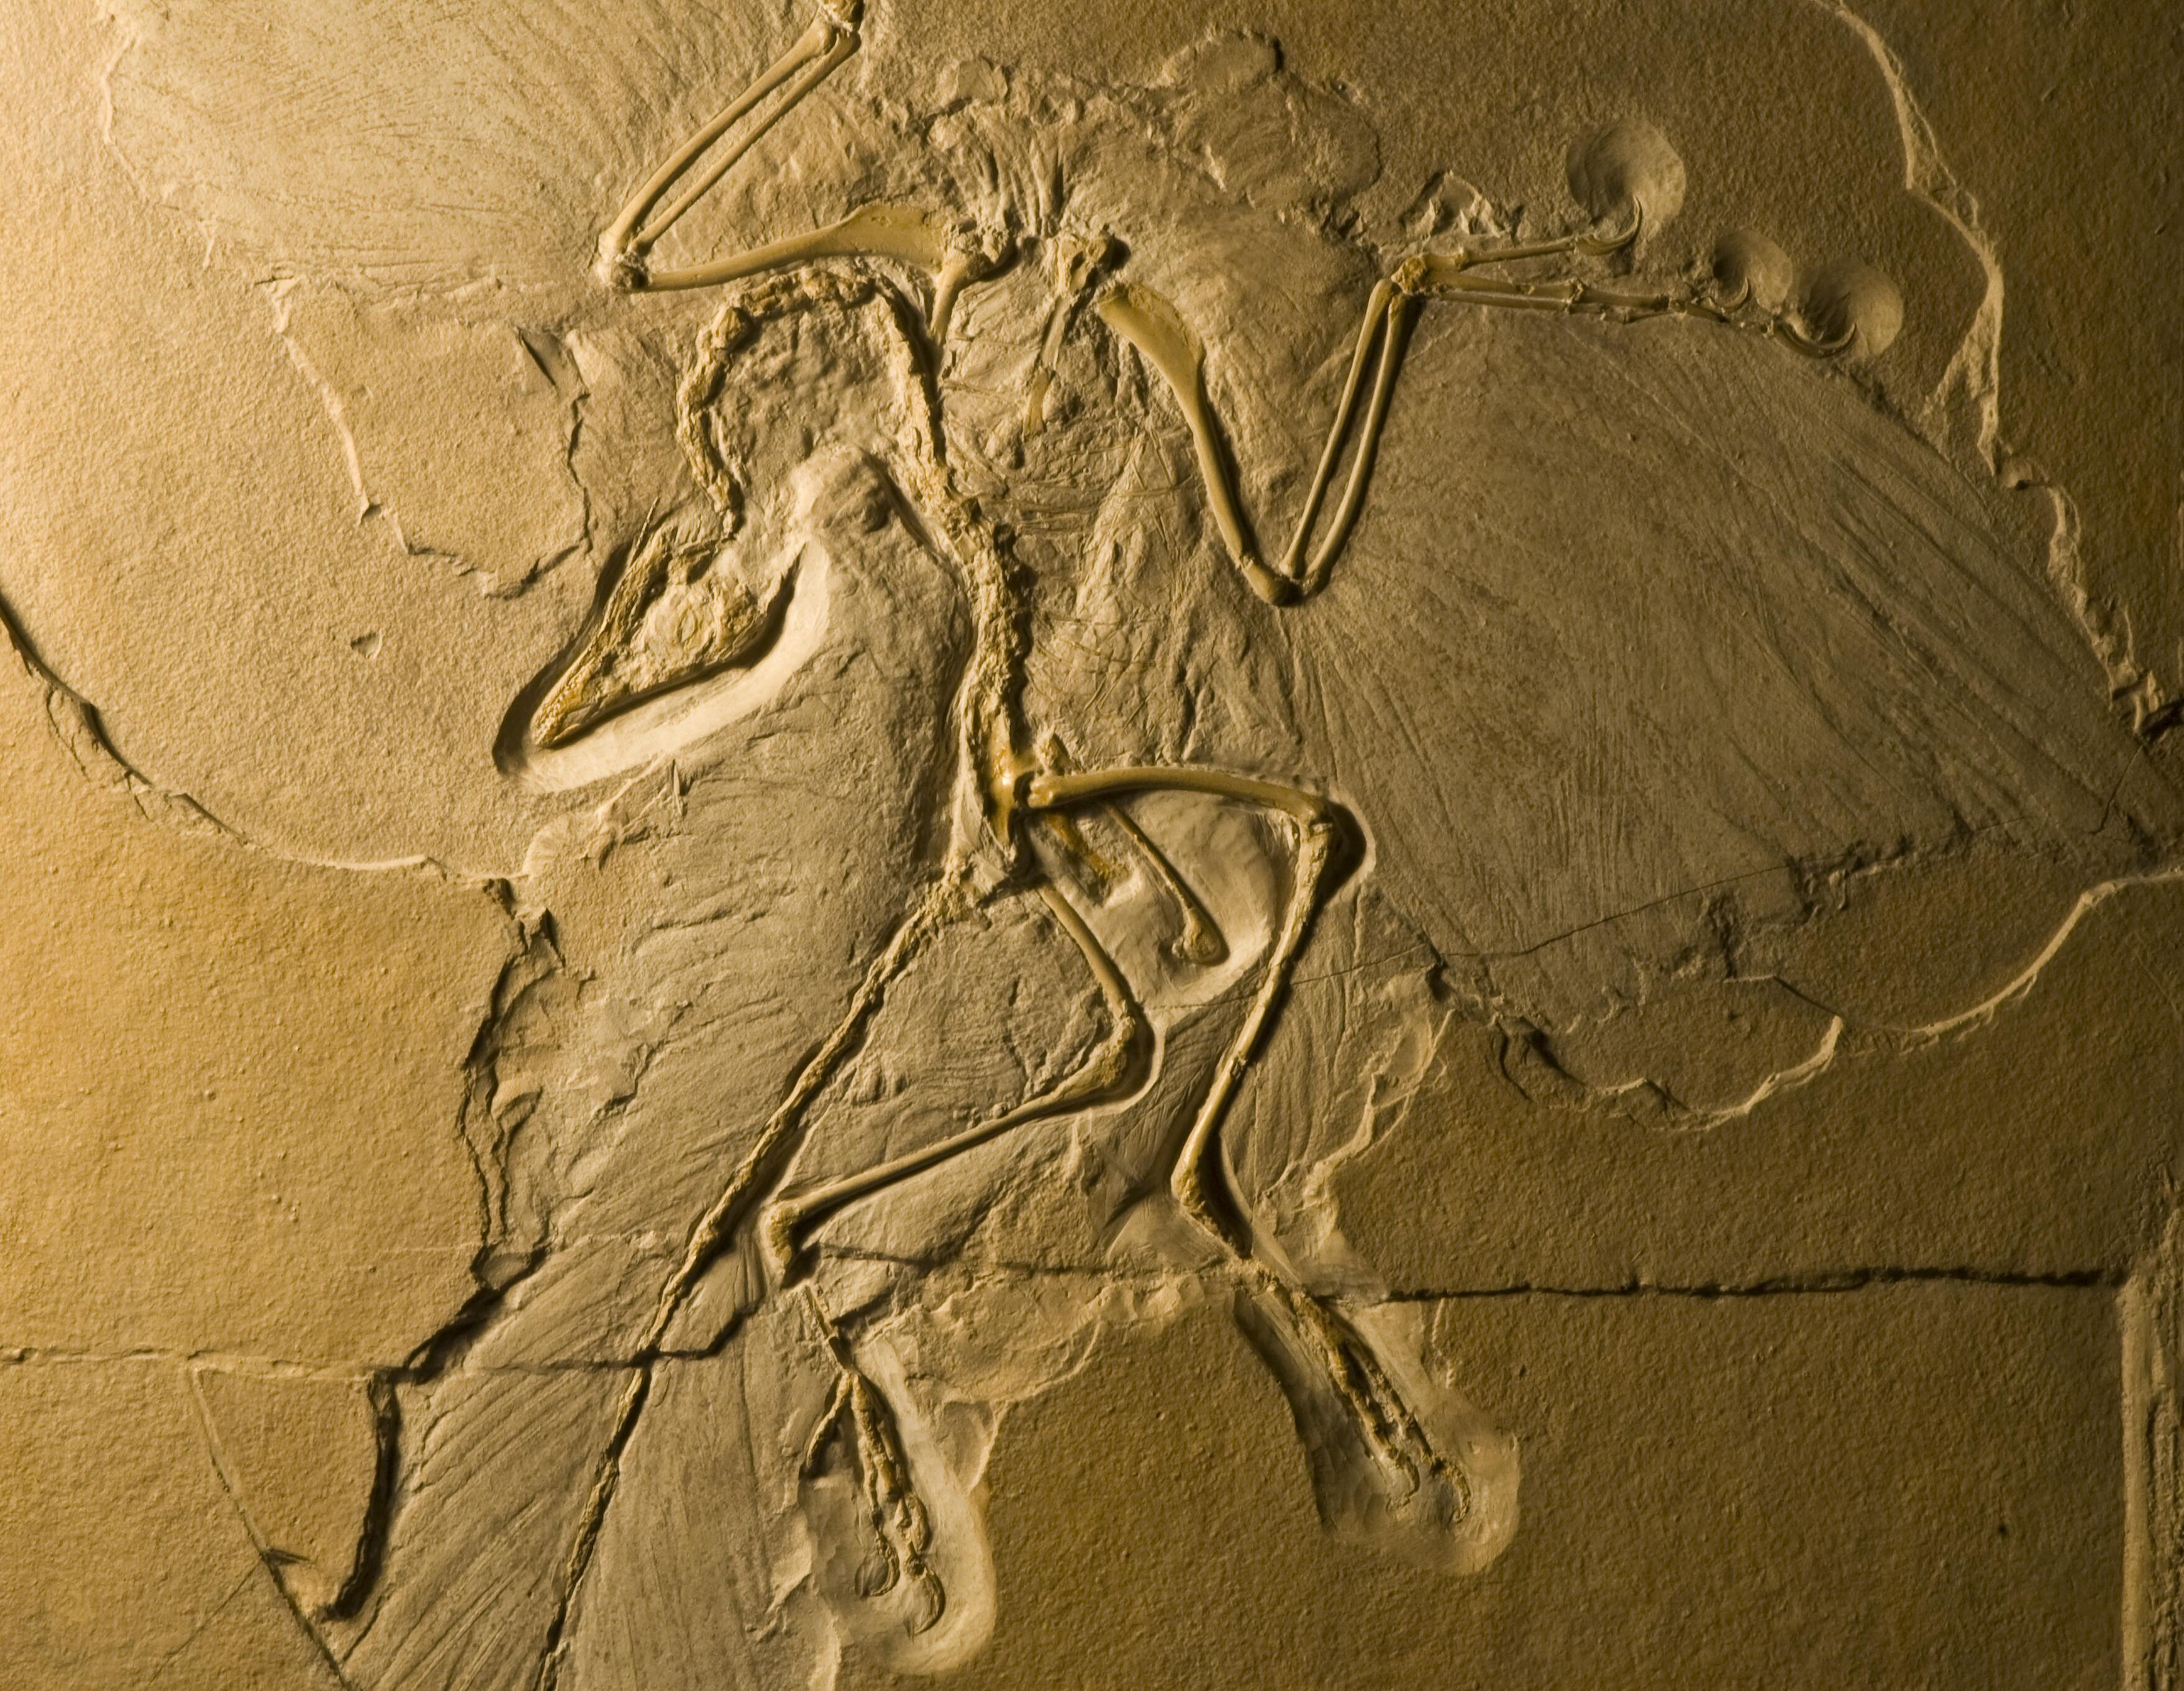 New fossil determines Archaeopteryx wore 'feathered trousers'